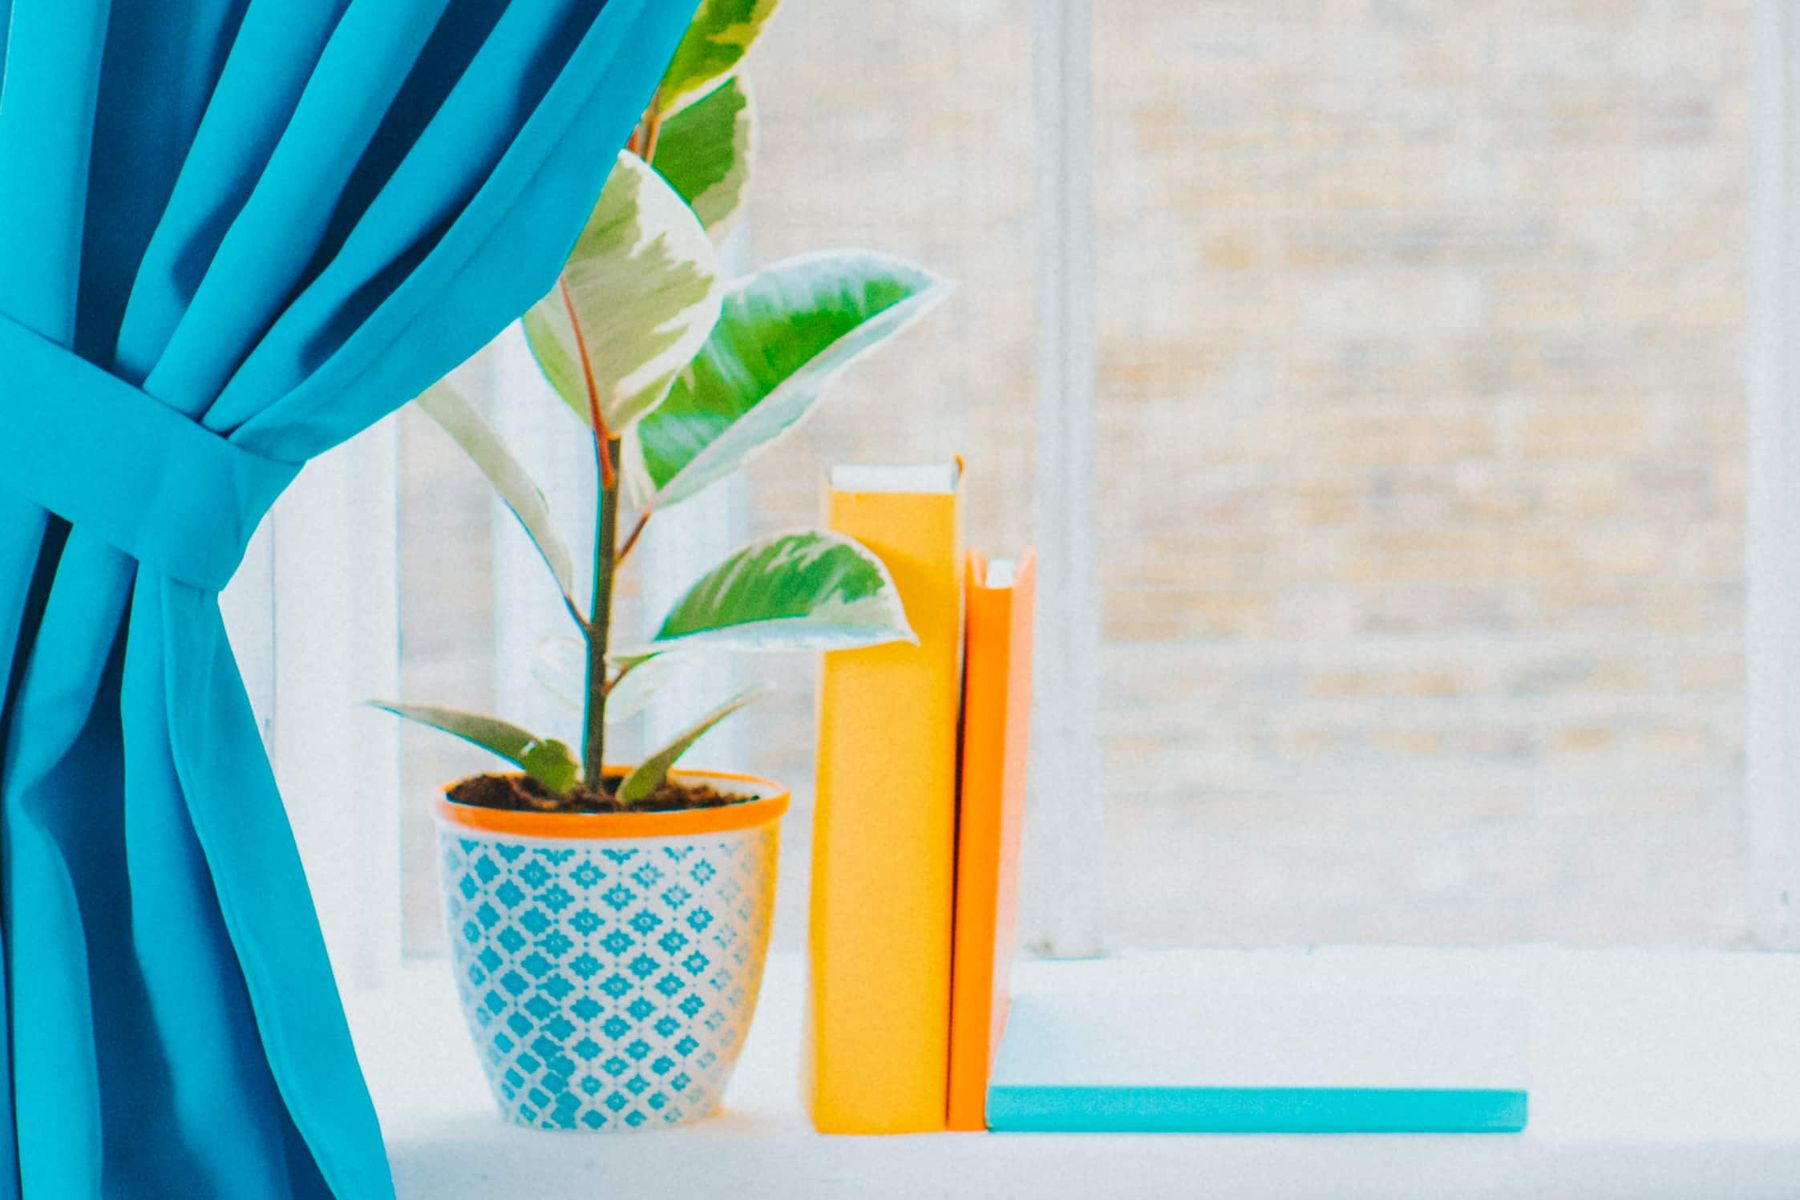 clean window and window sill with plant pot, books, and blue curtain